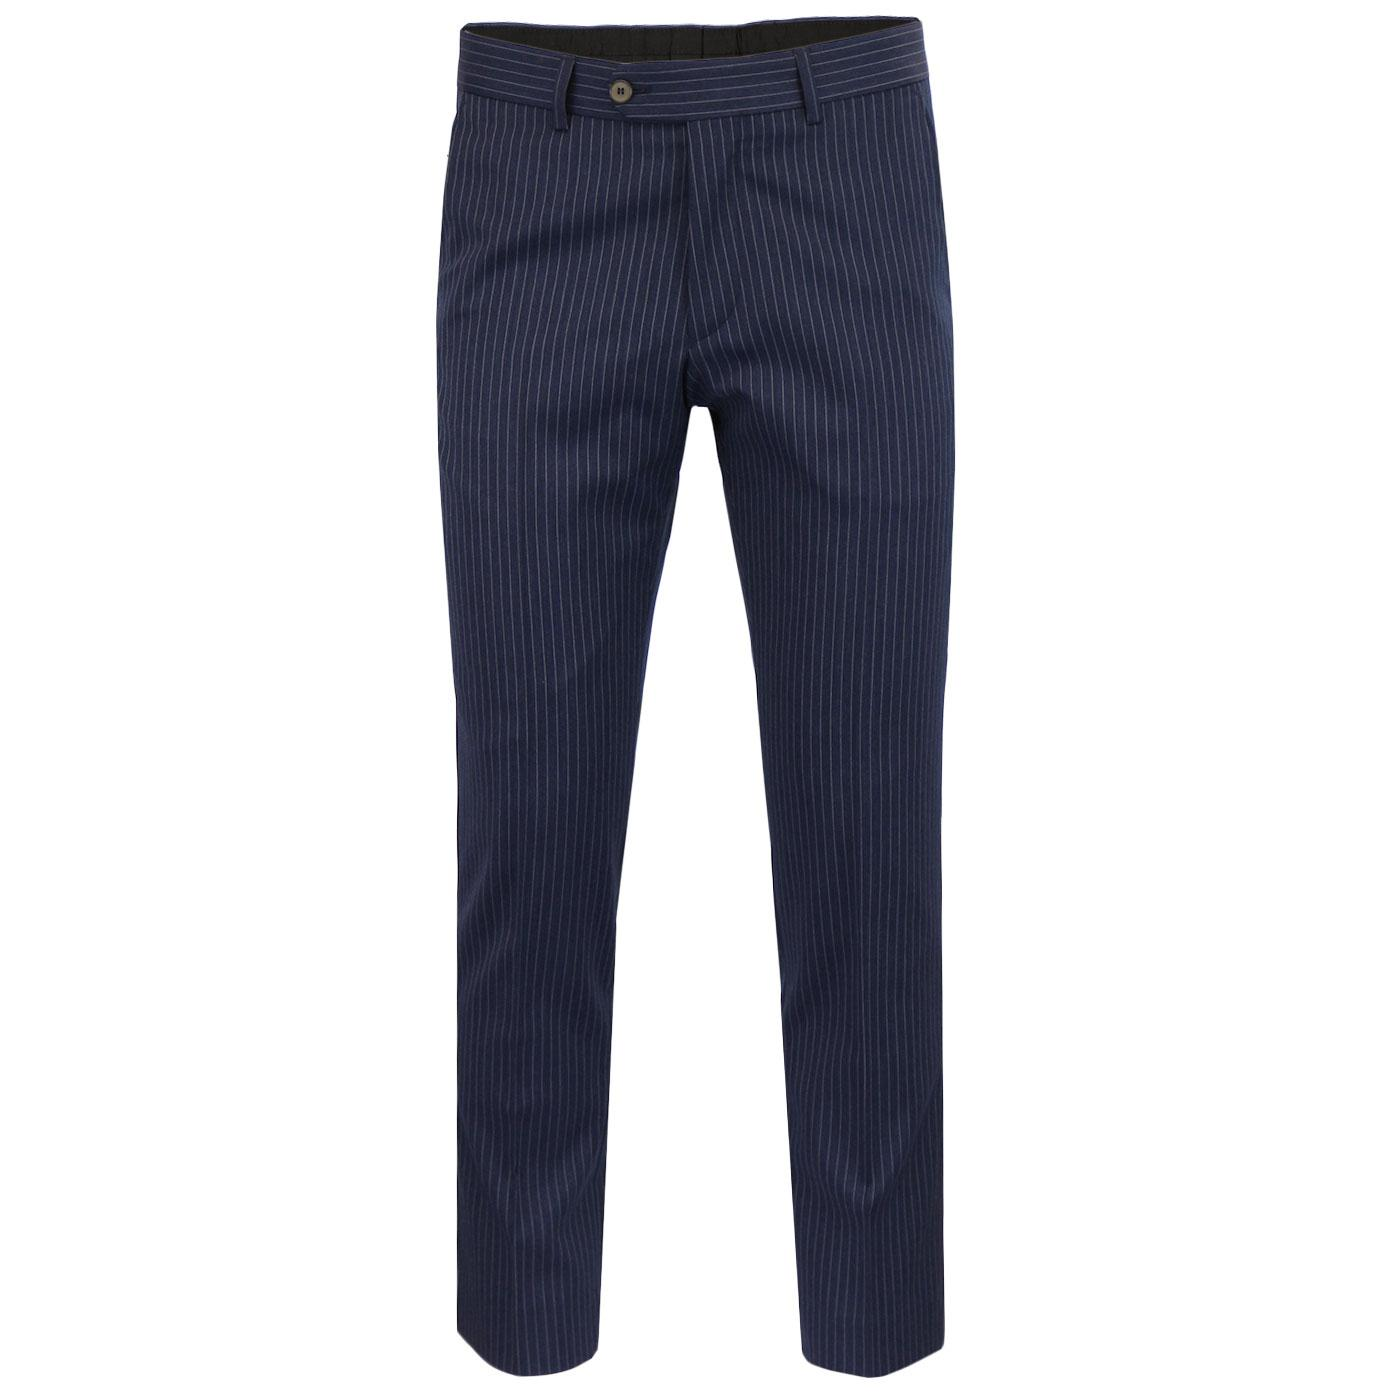 Men's Mod Pinstripe Slim Leg Suit Trousers (Navy)